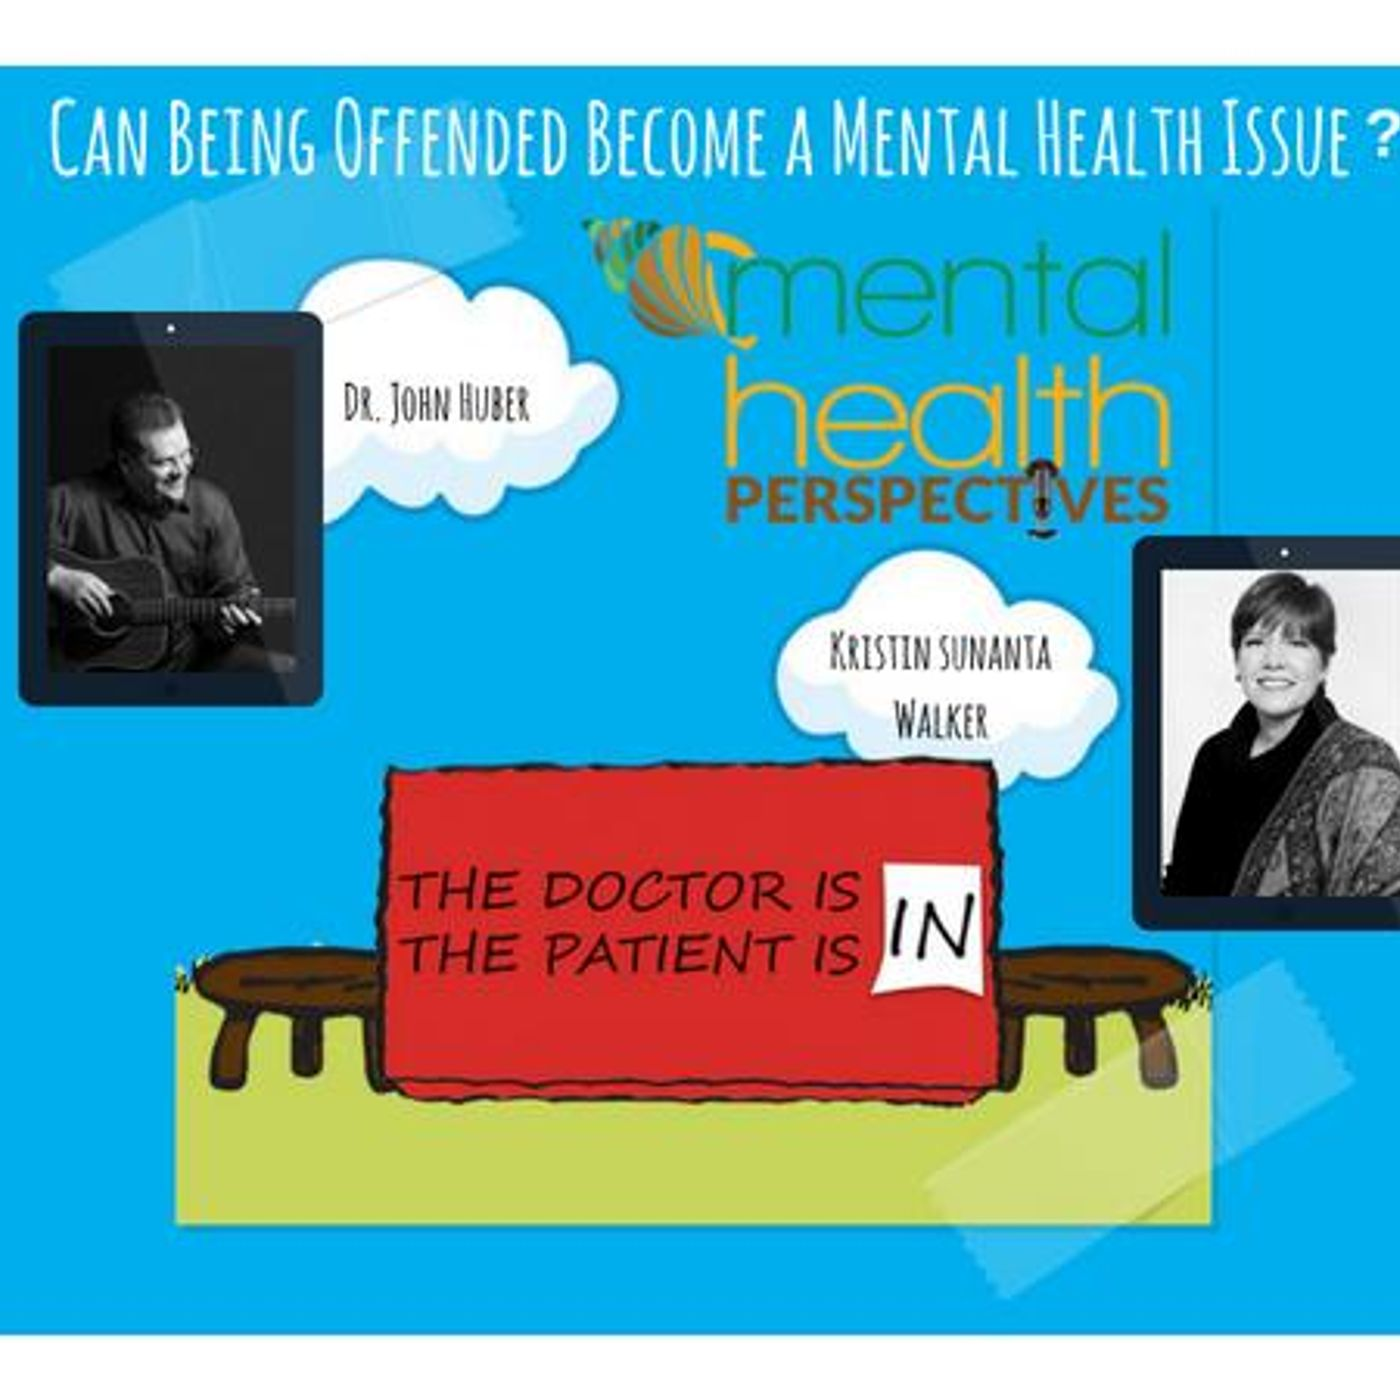 Mental Health News Radio - Mental Health Perspectives: Can Being Offended Become a Mental Health Issue?